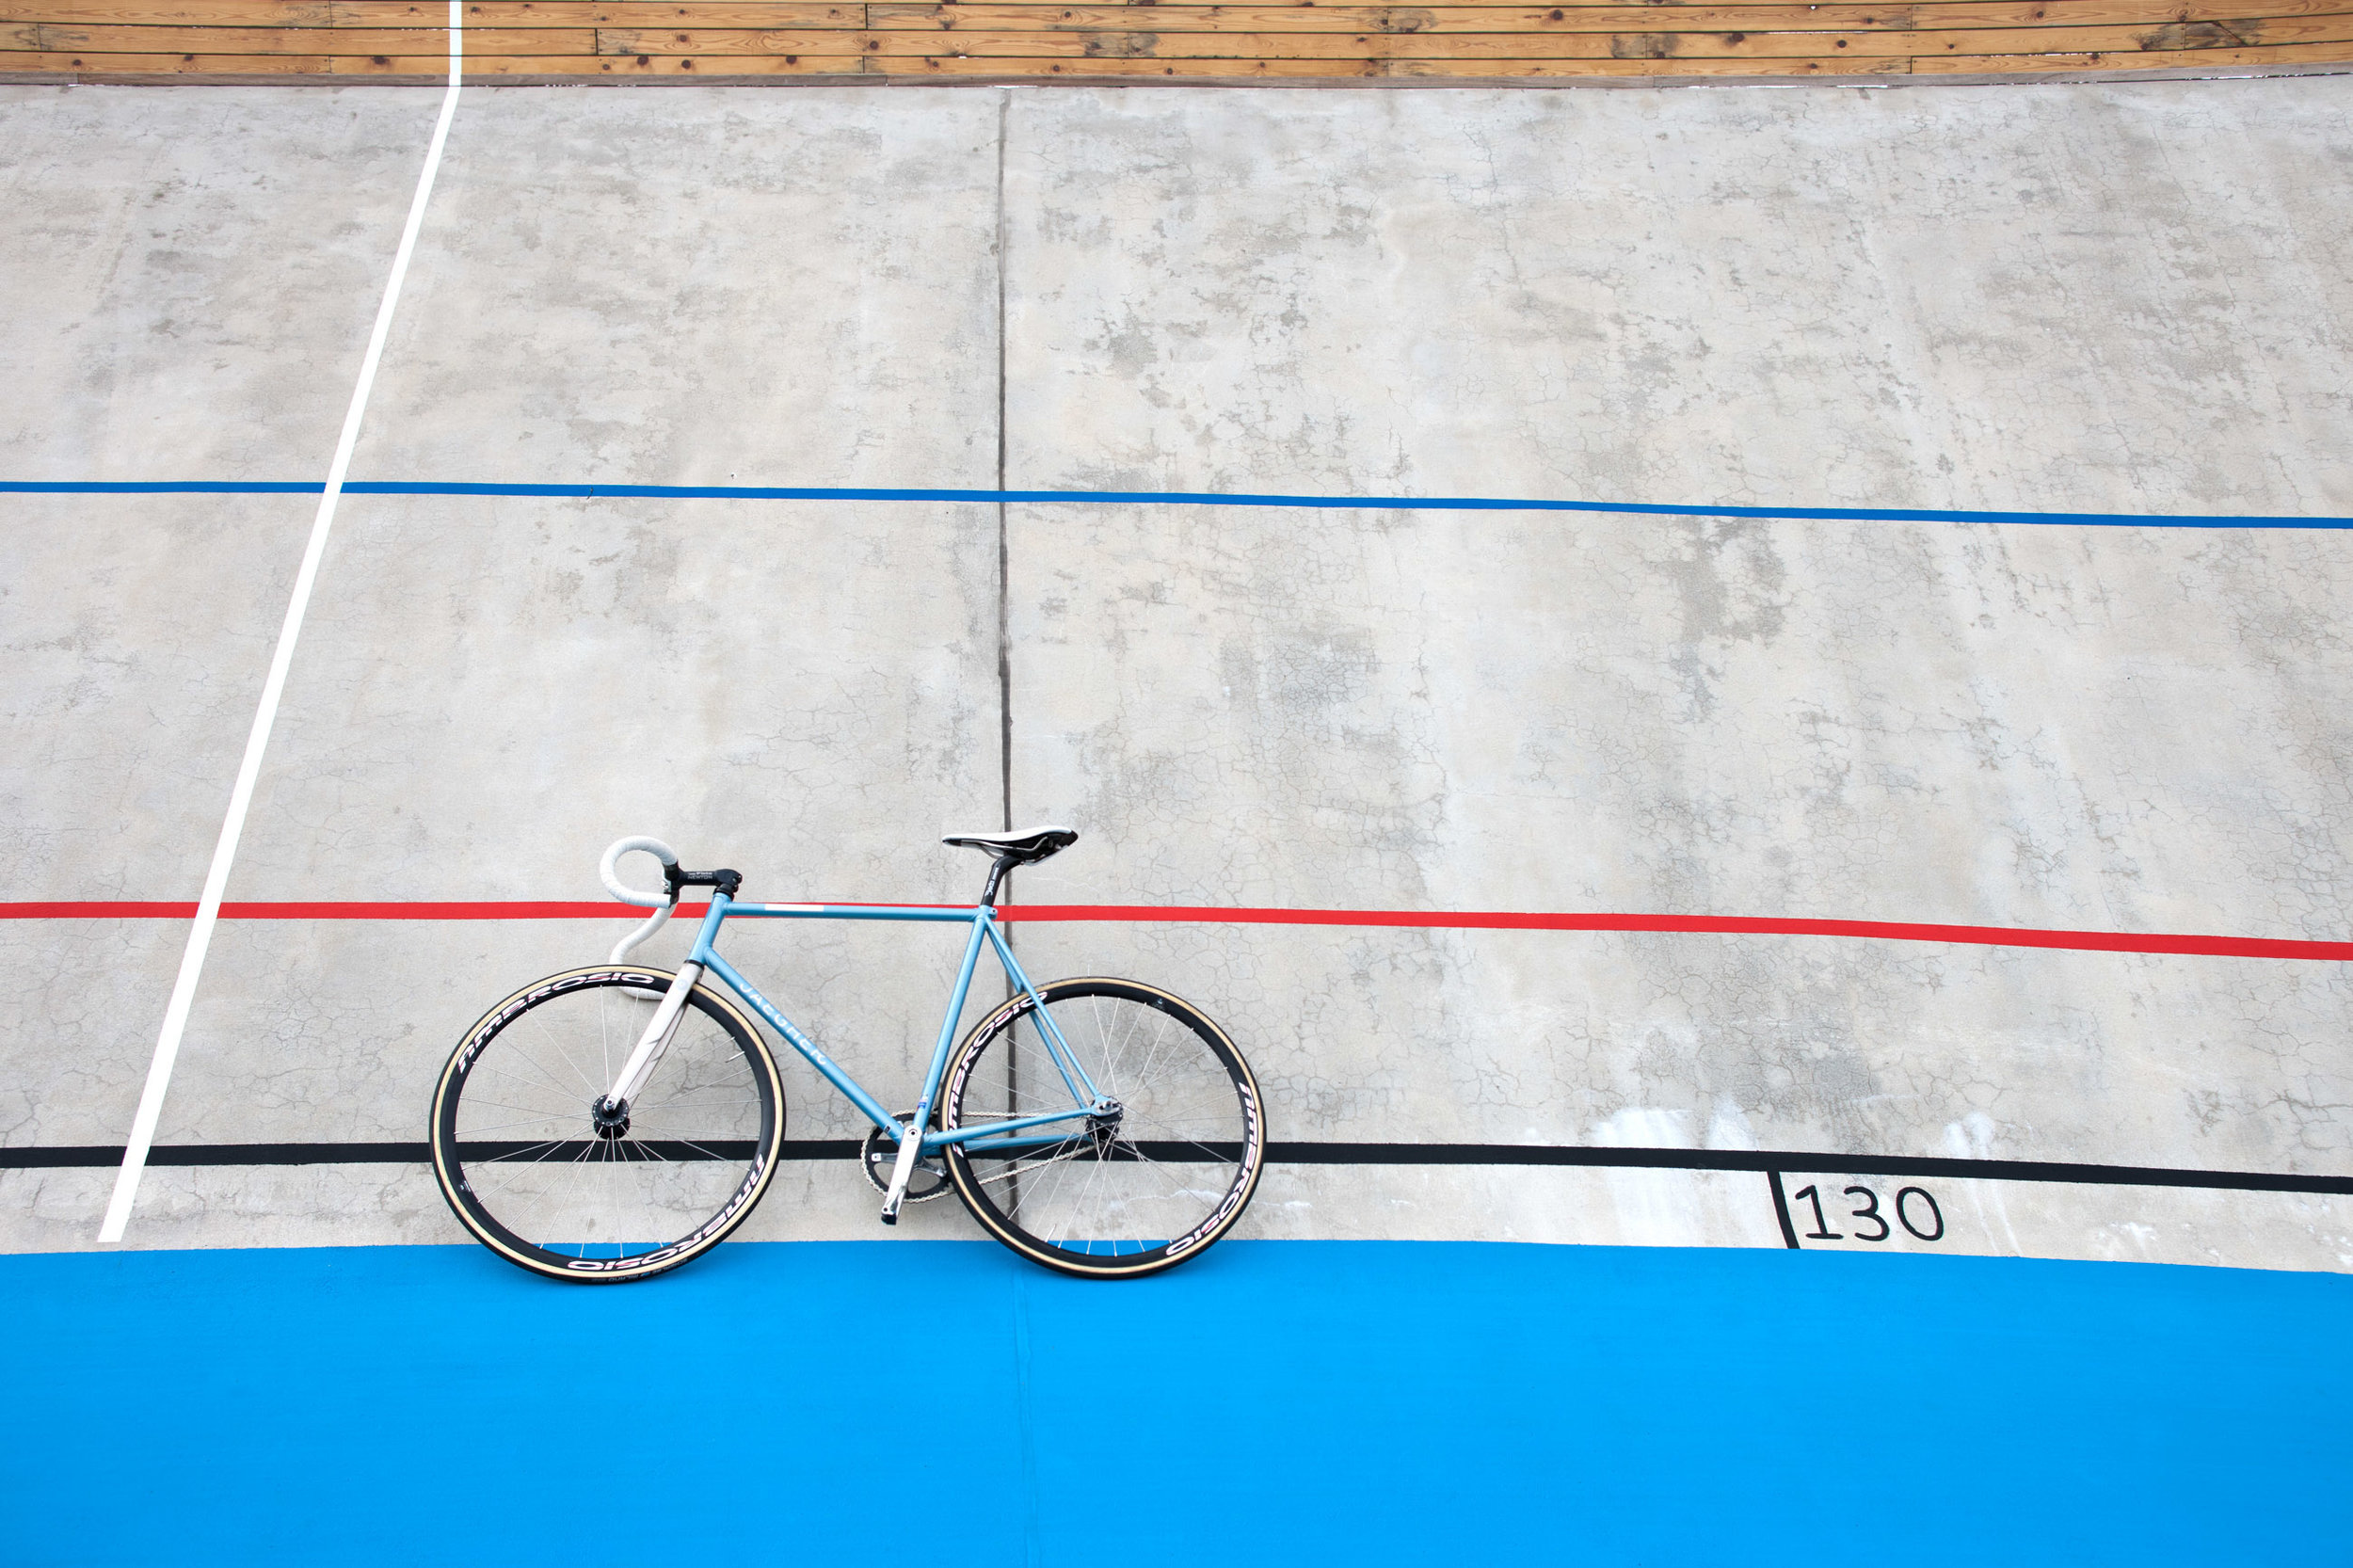 Jaegher-–-Airlight-Steel-Race-Cycles-rennrad-bicycle-minimal-branding-by-jelle-marechal-mindsparkle-mag-15.jpeg